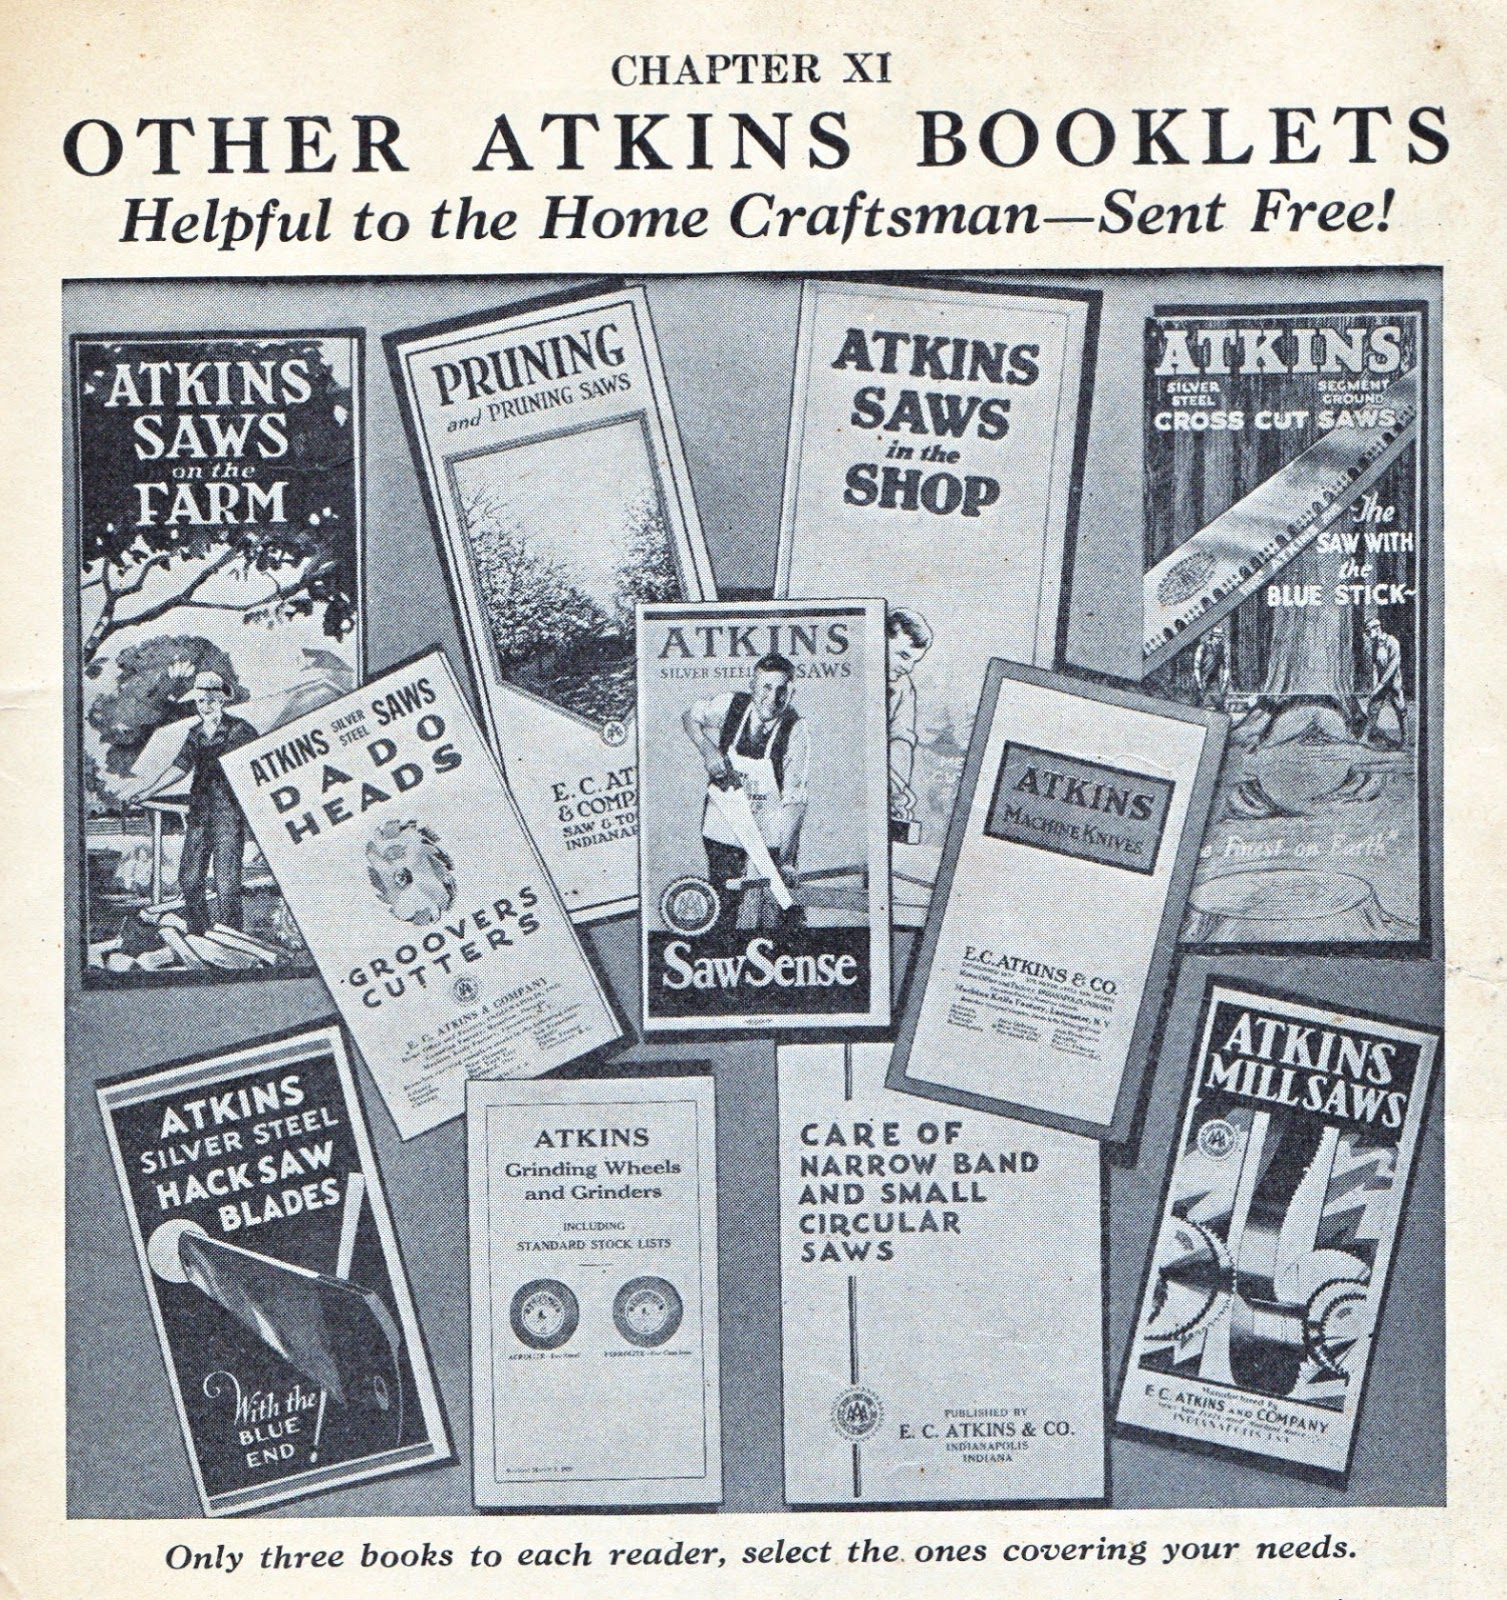 Atkins Saw Identification